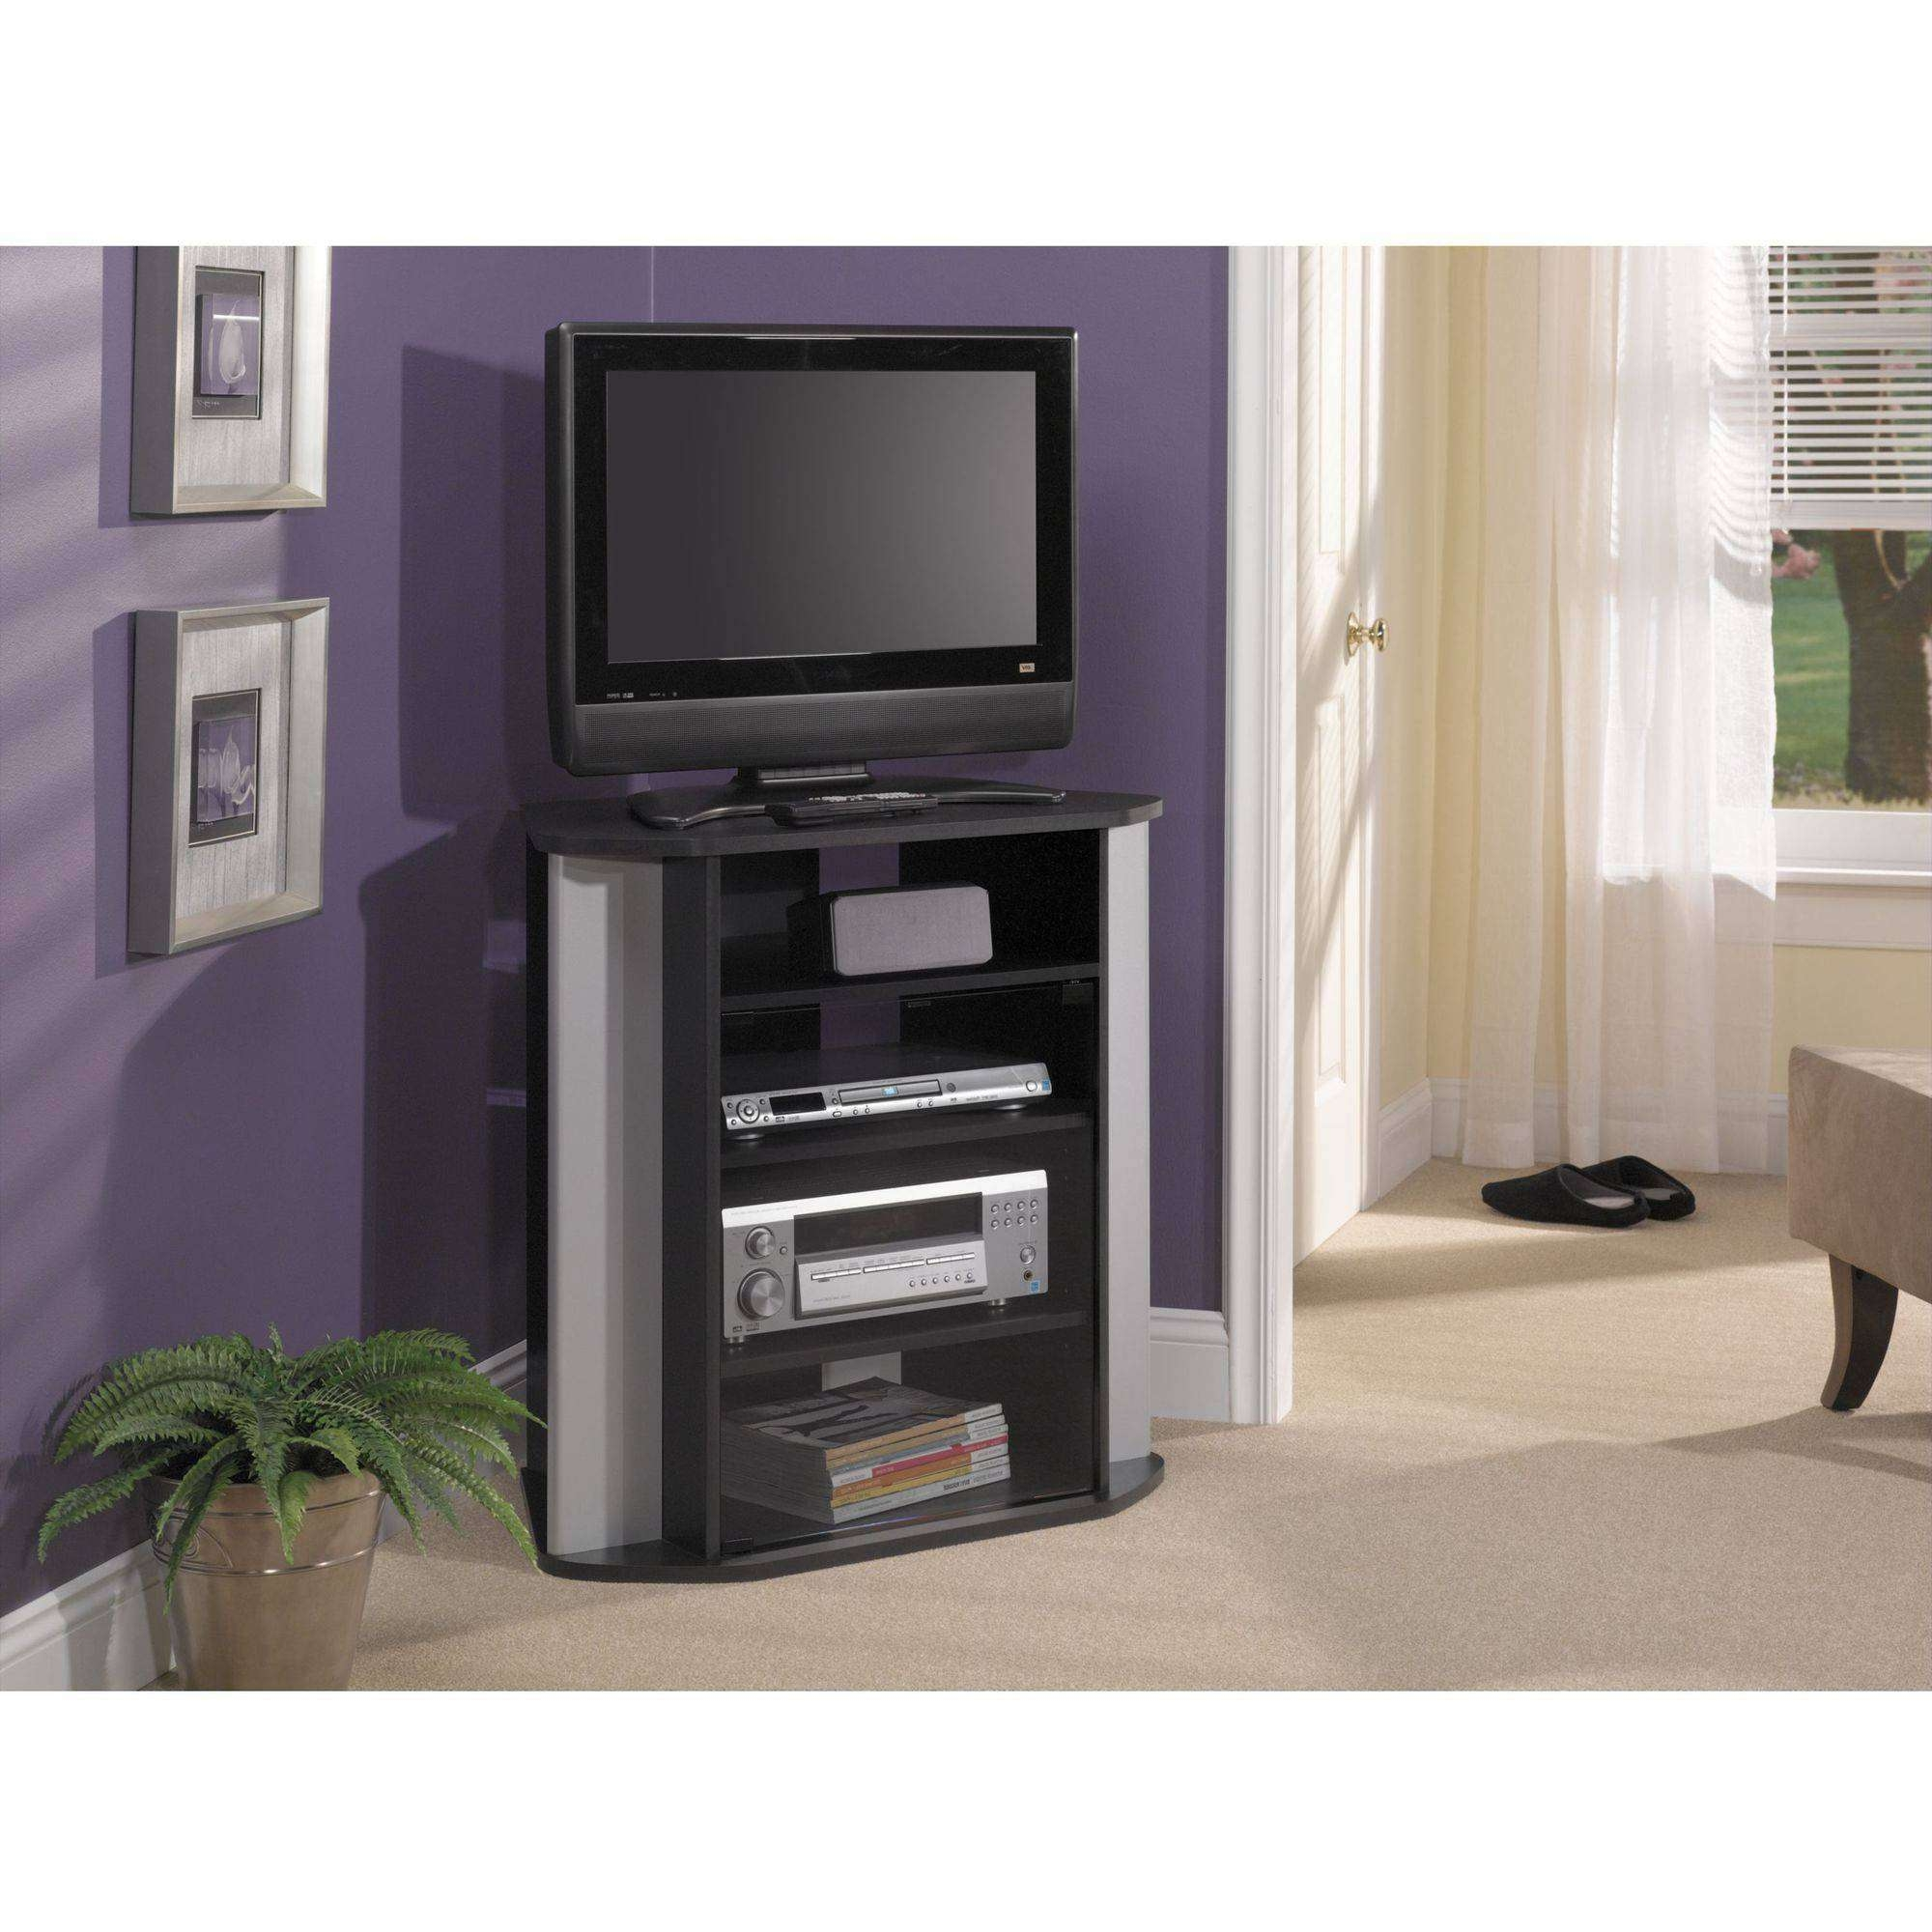 Bush Visions Black Tall Corner Tv Stand, For Tvs Up To 37 With Regard To Black Wood Corner Tv Stands (View 5 of 15)